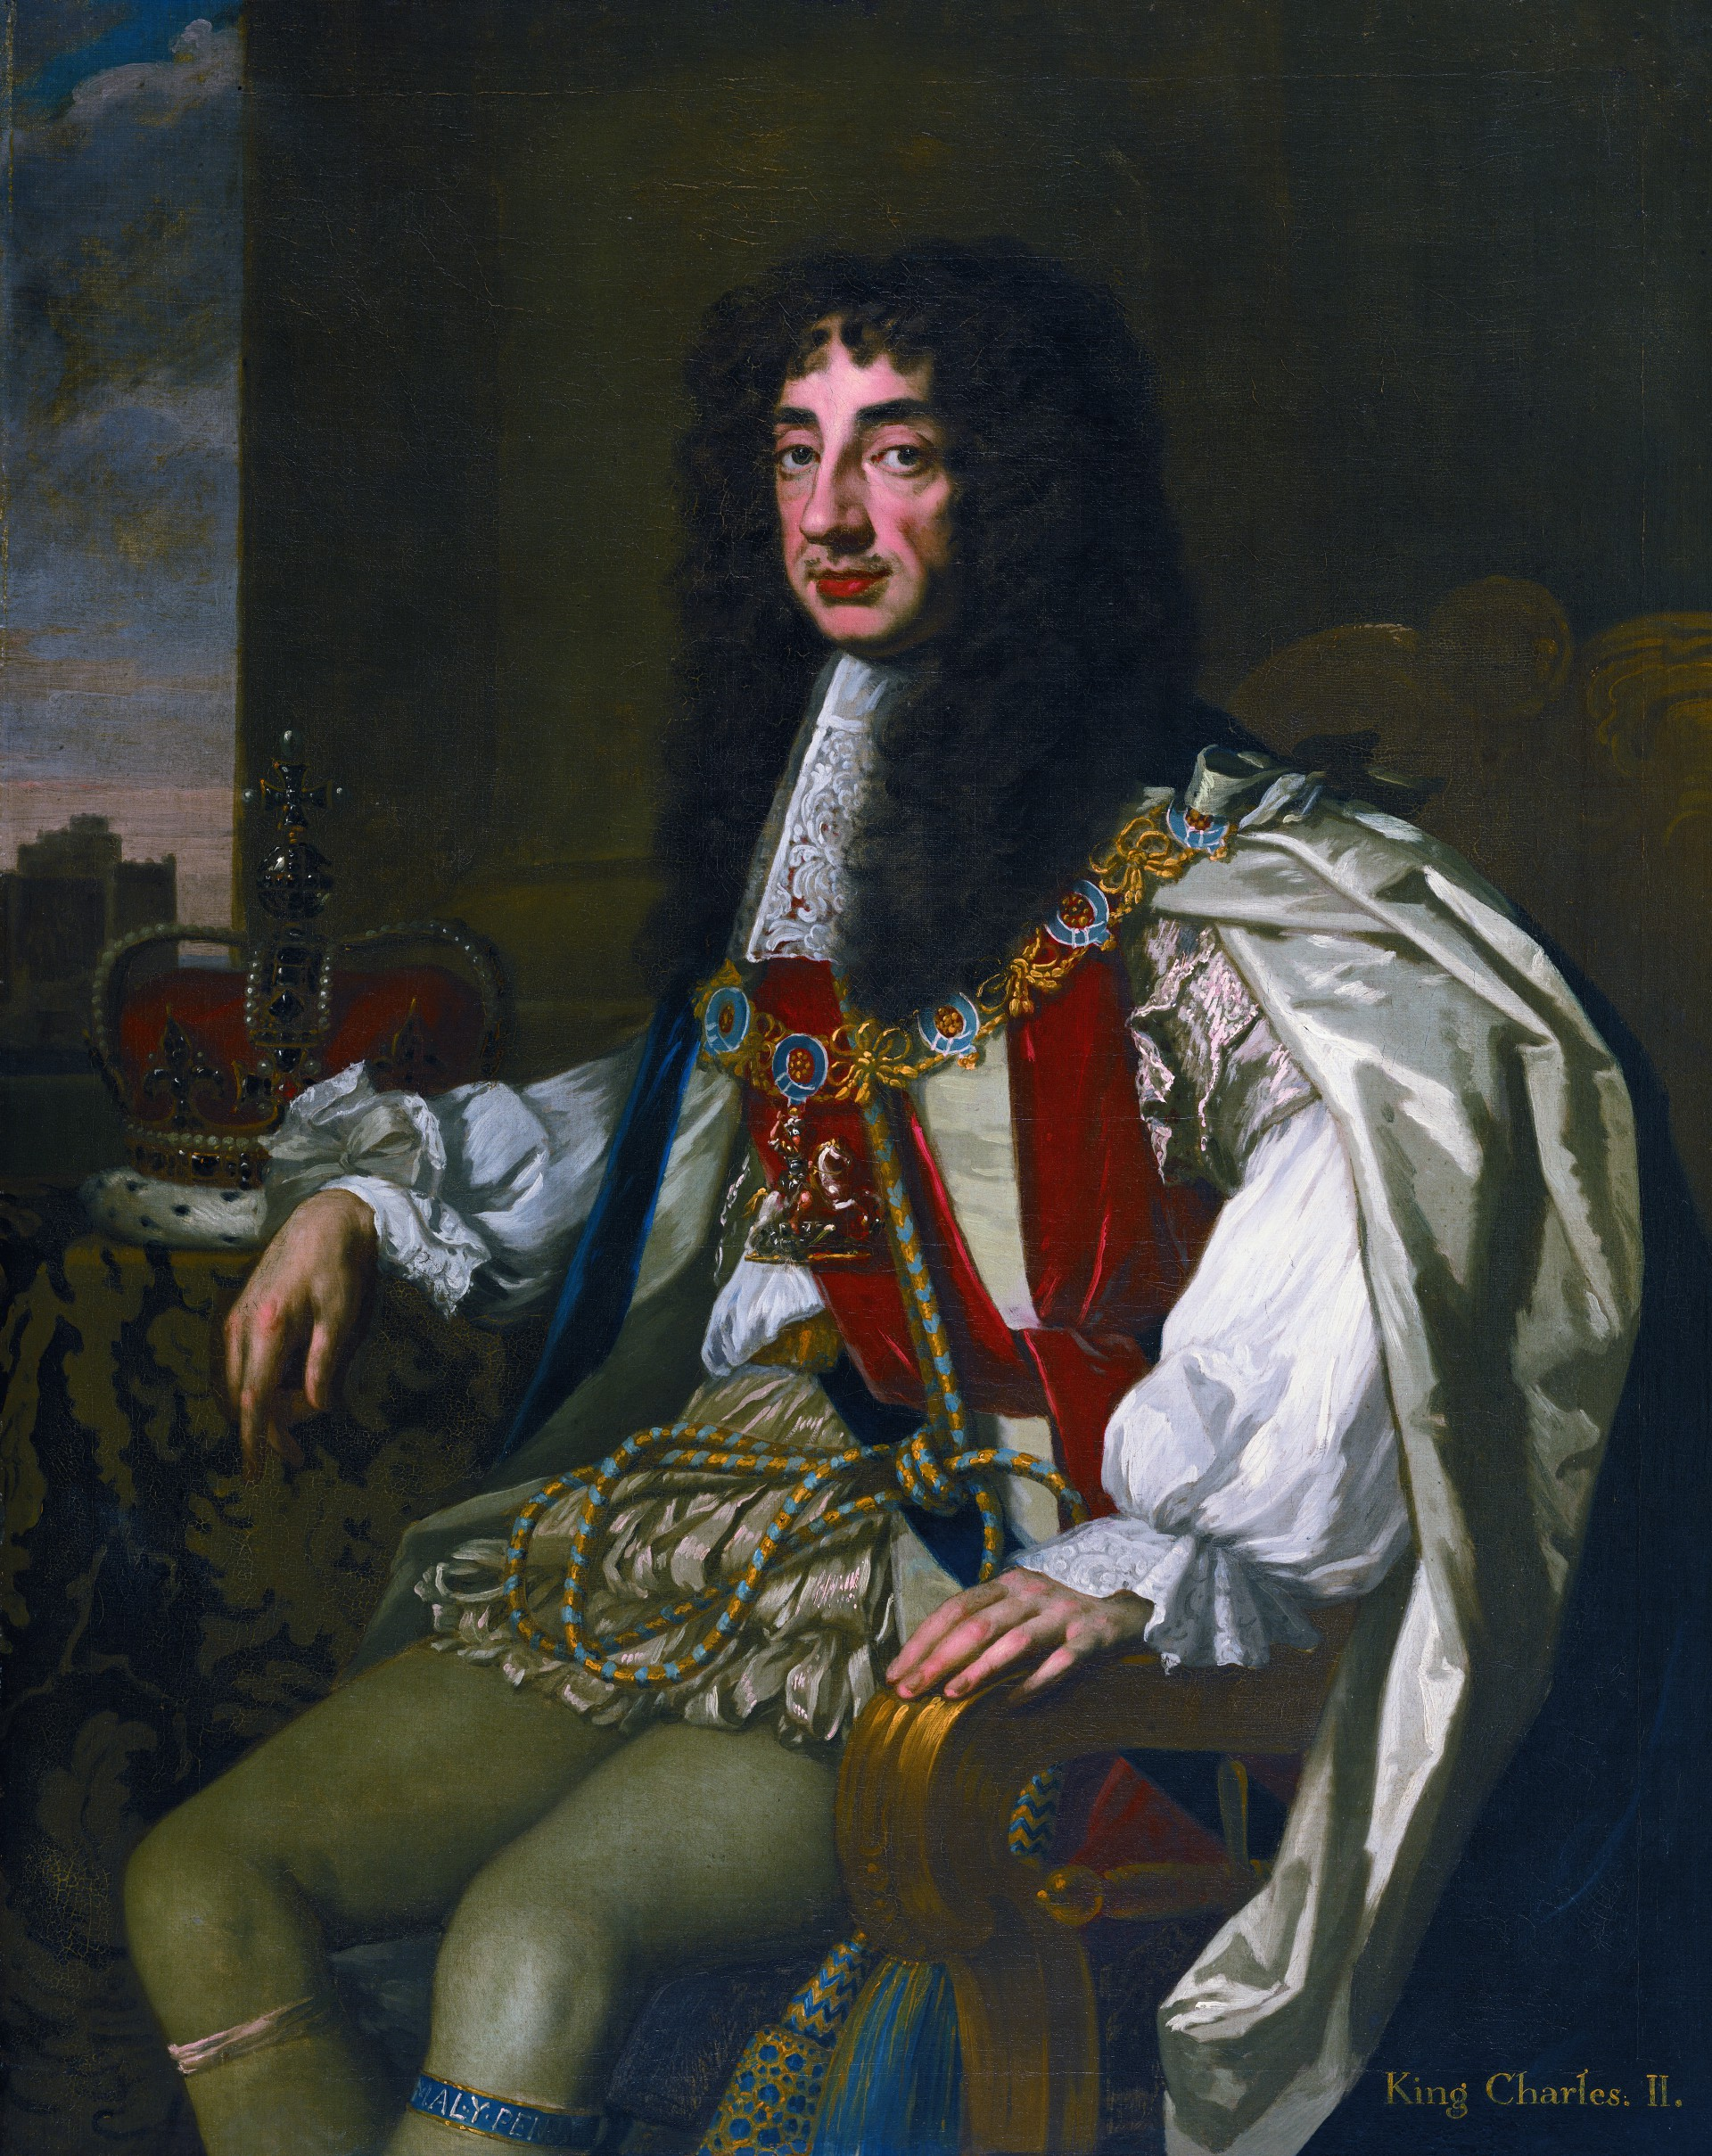 The Merry Monarch: Charles II and the Women in his Life